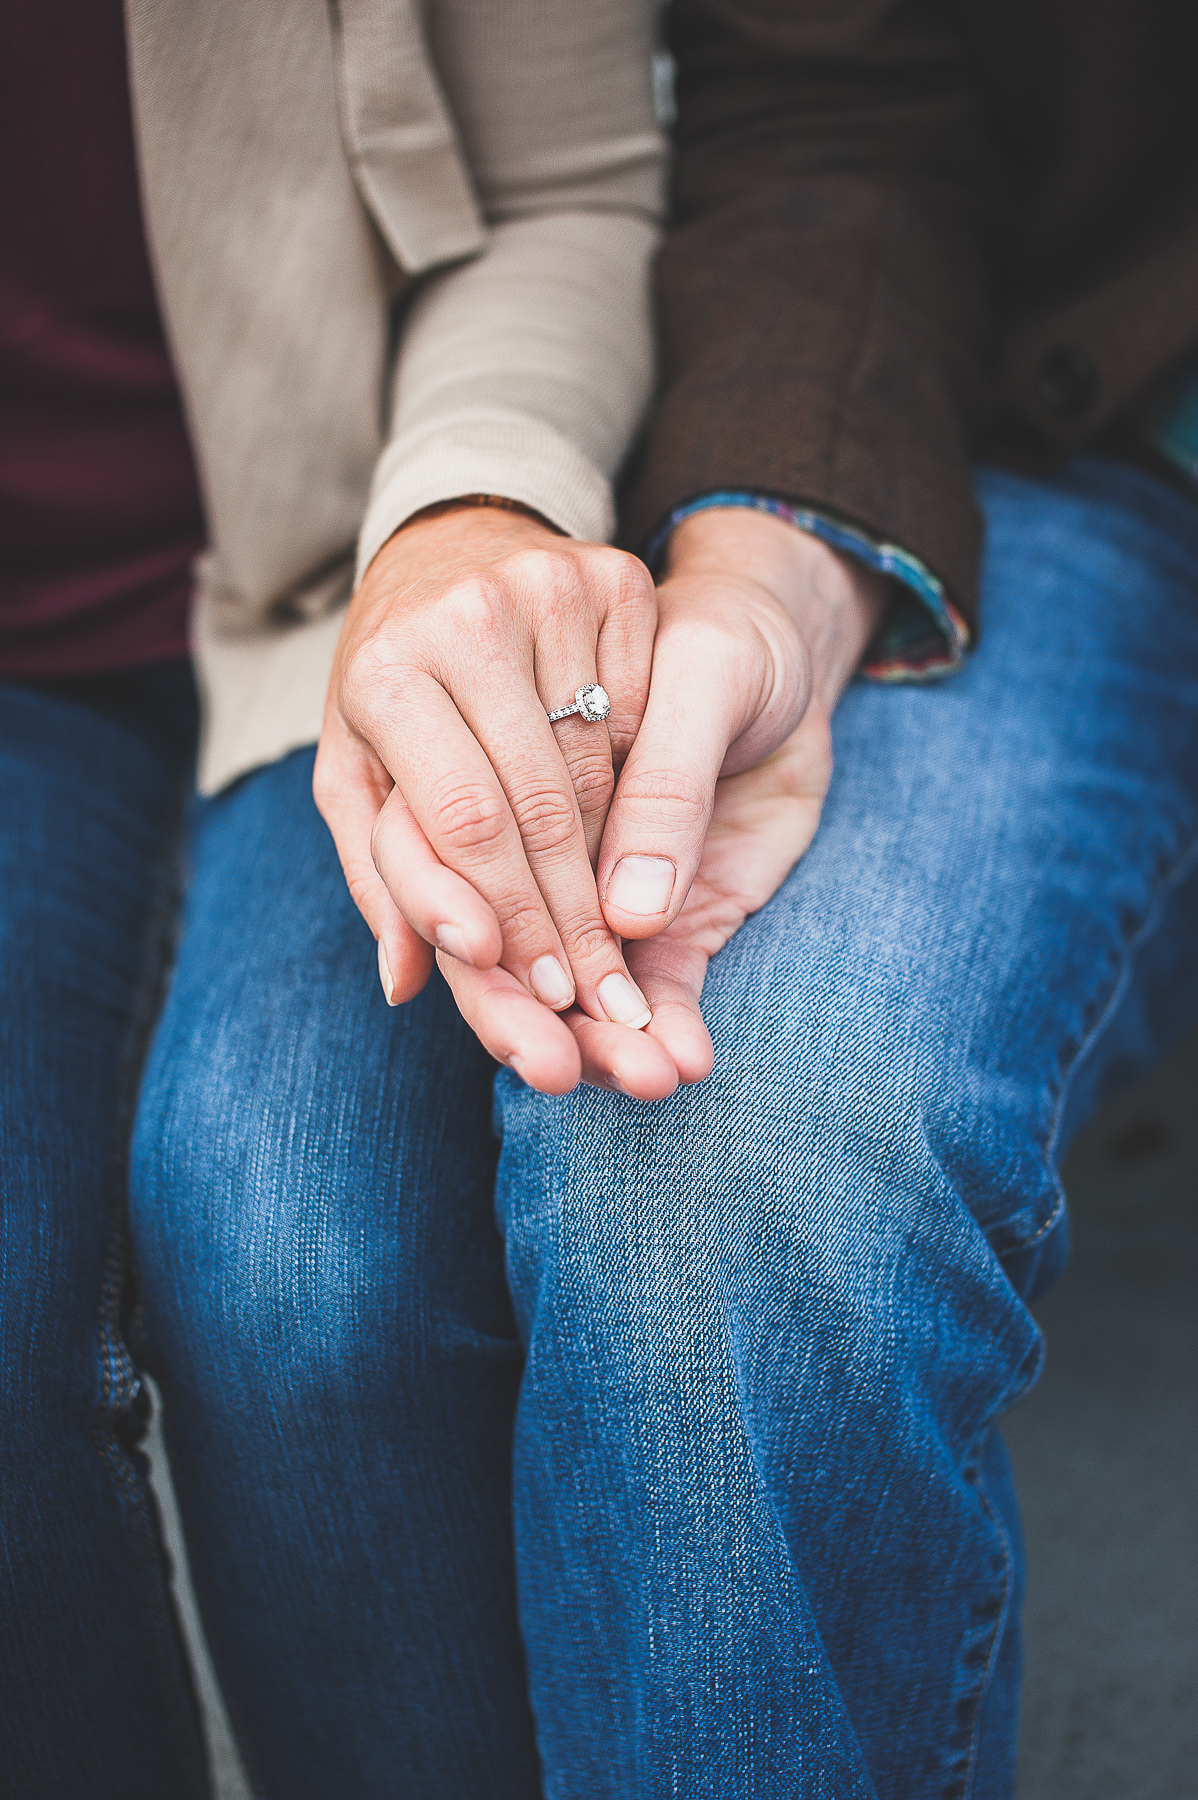 breighton-and-basette-photography-copyrighted-image-blog-emily-and-dave-engagement-020.jpg